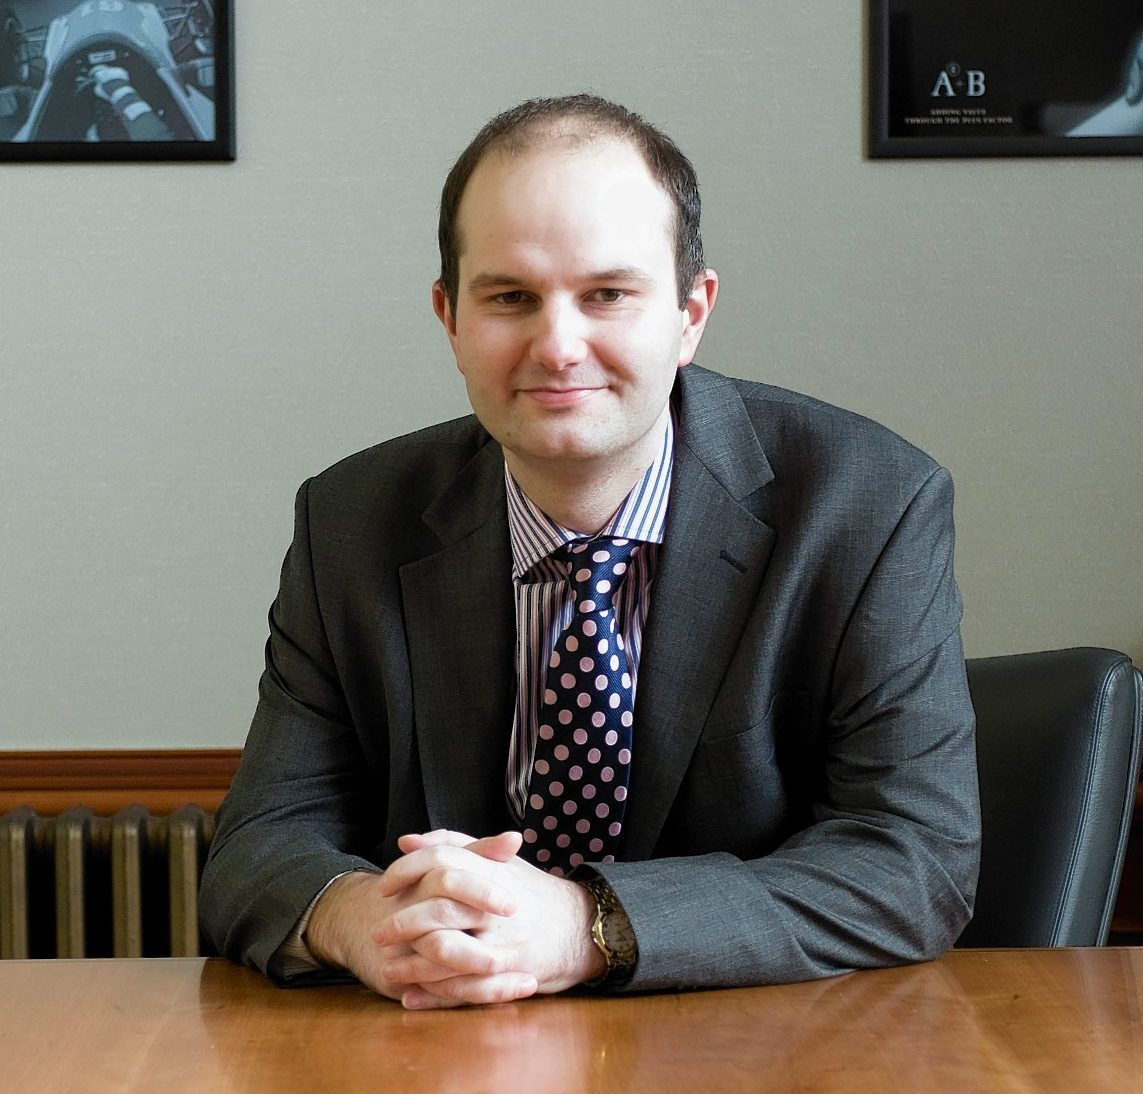 Douglas Martin, head of corporate finance at AAB.